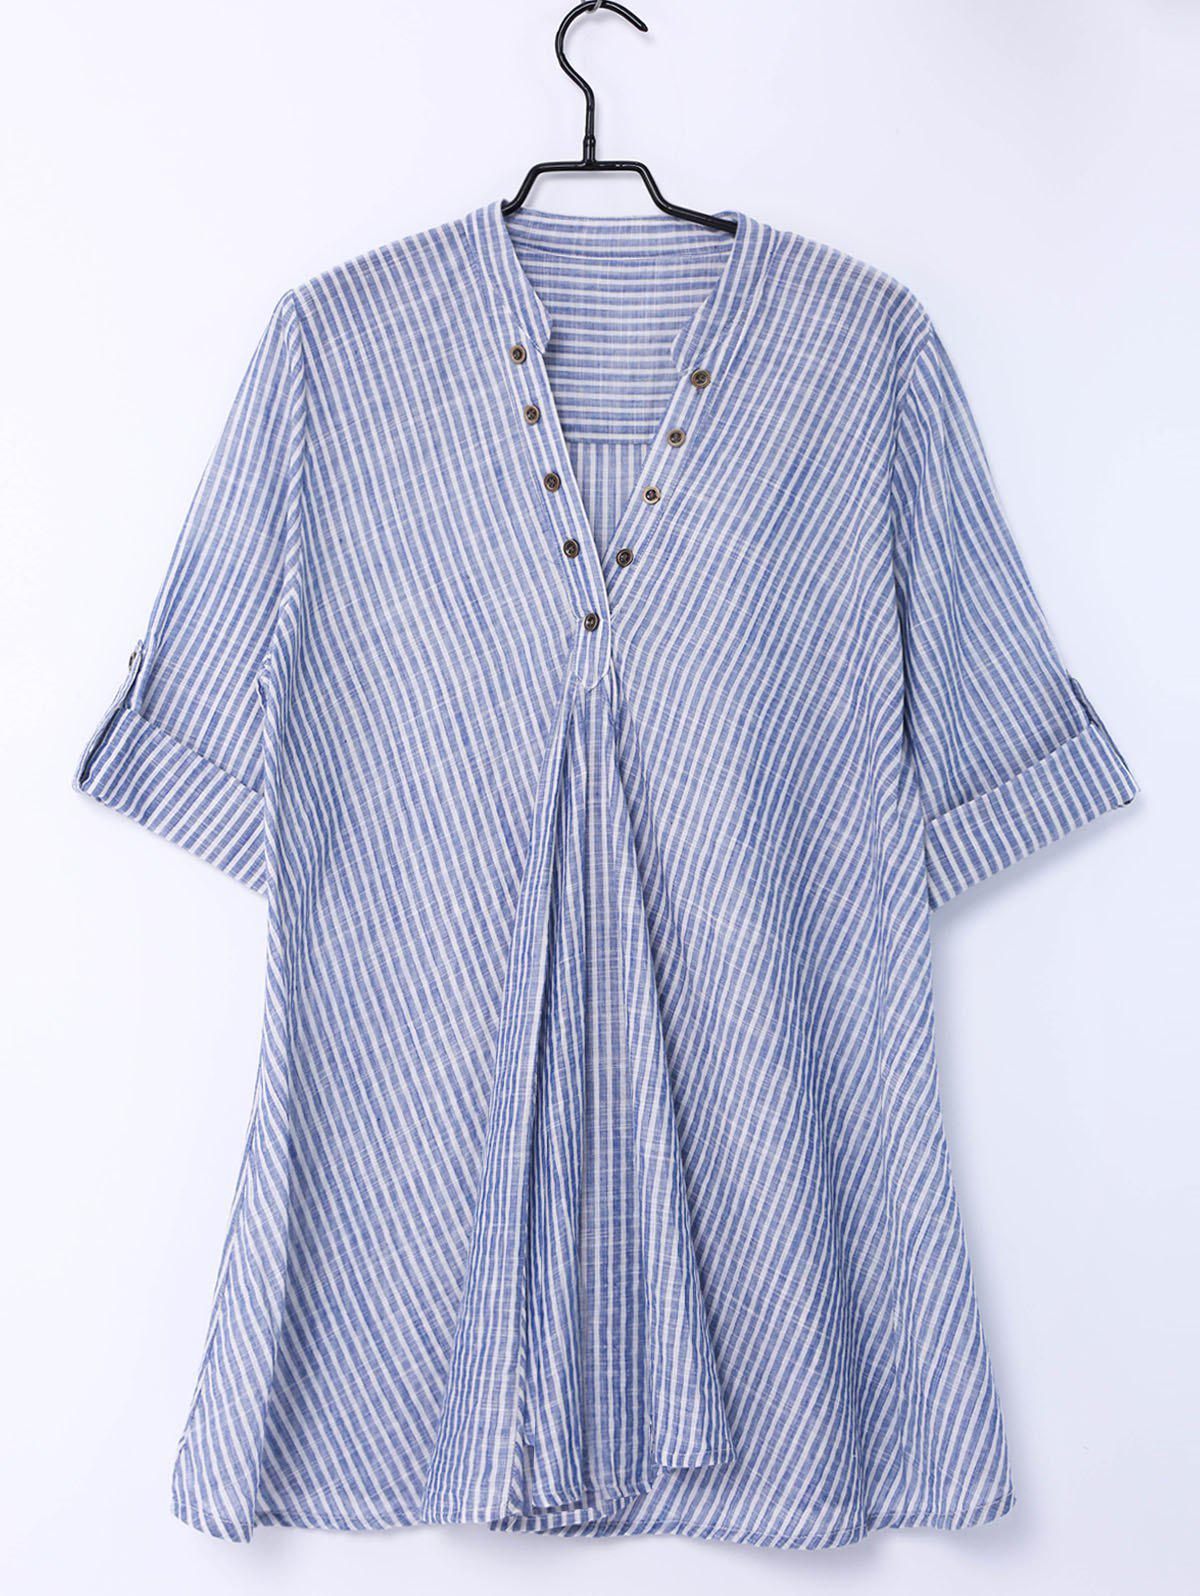 Trendy Pinstriped Short Sleeve Blouse For Women - STRIPE M